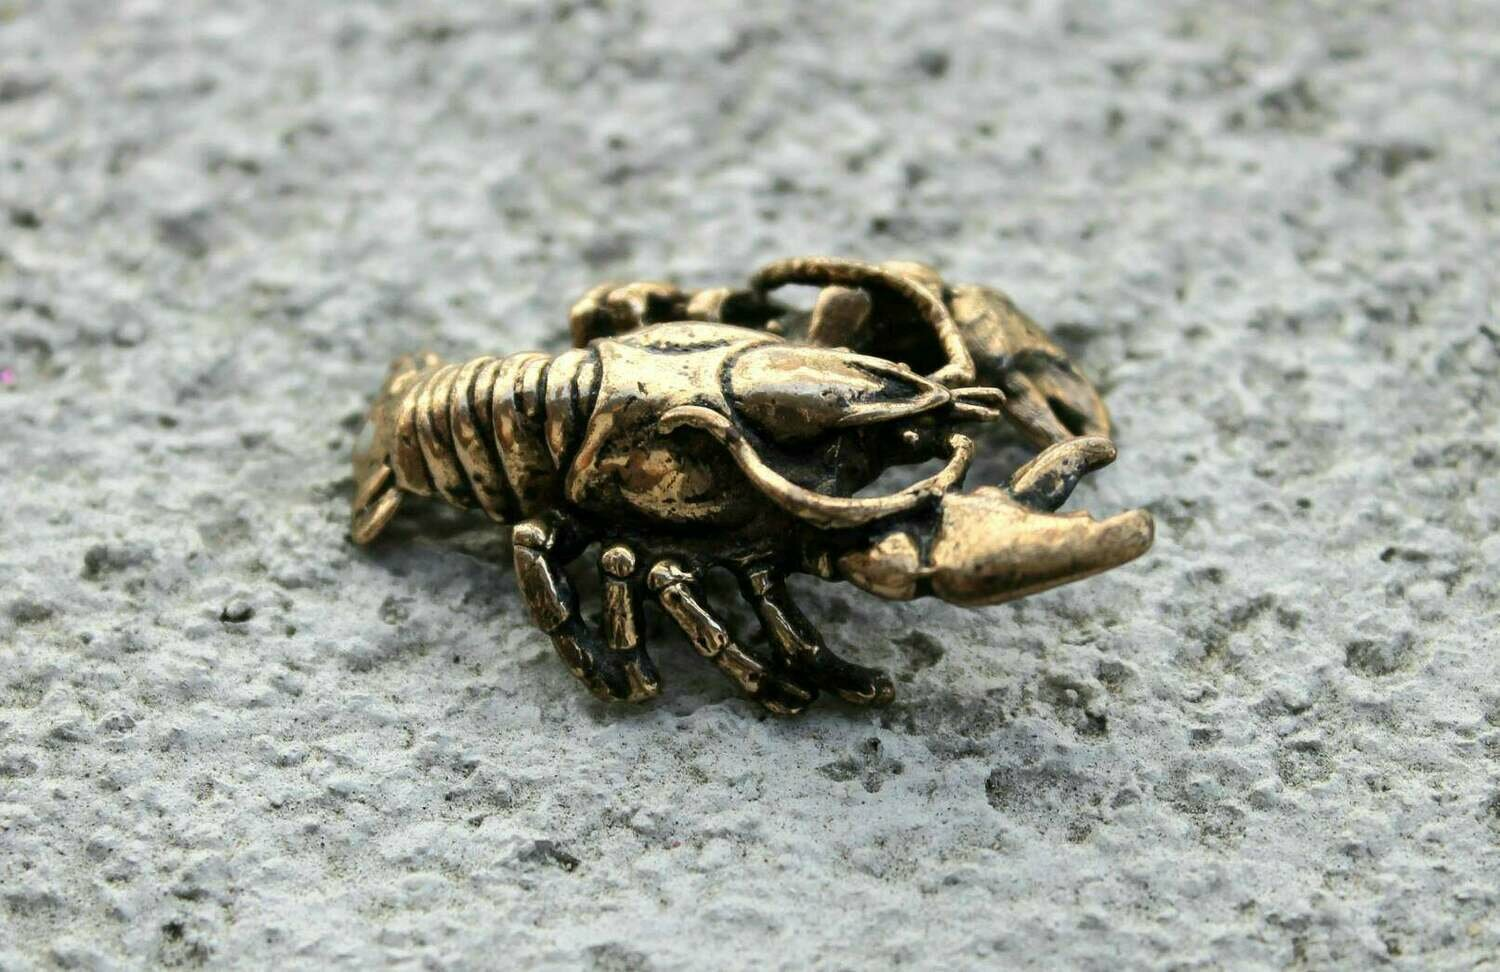 Brass Crayfish Miniature Home Decorating Collectible Sea Animal Figurine Handmade Souvenir